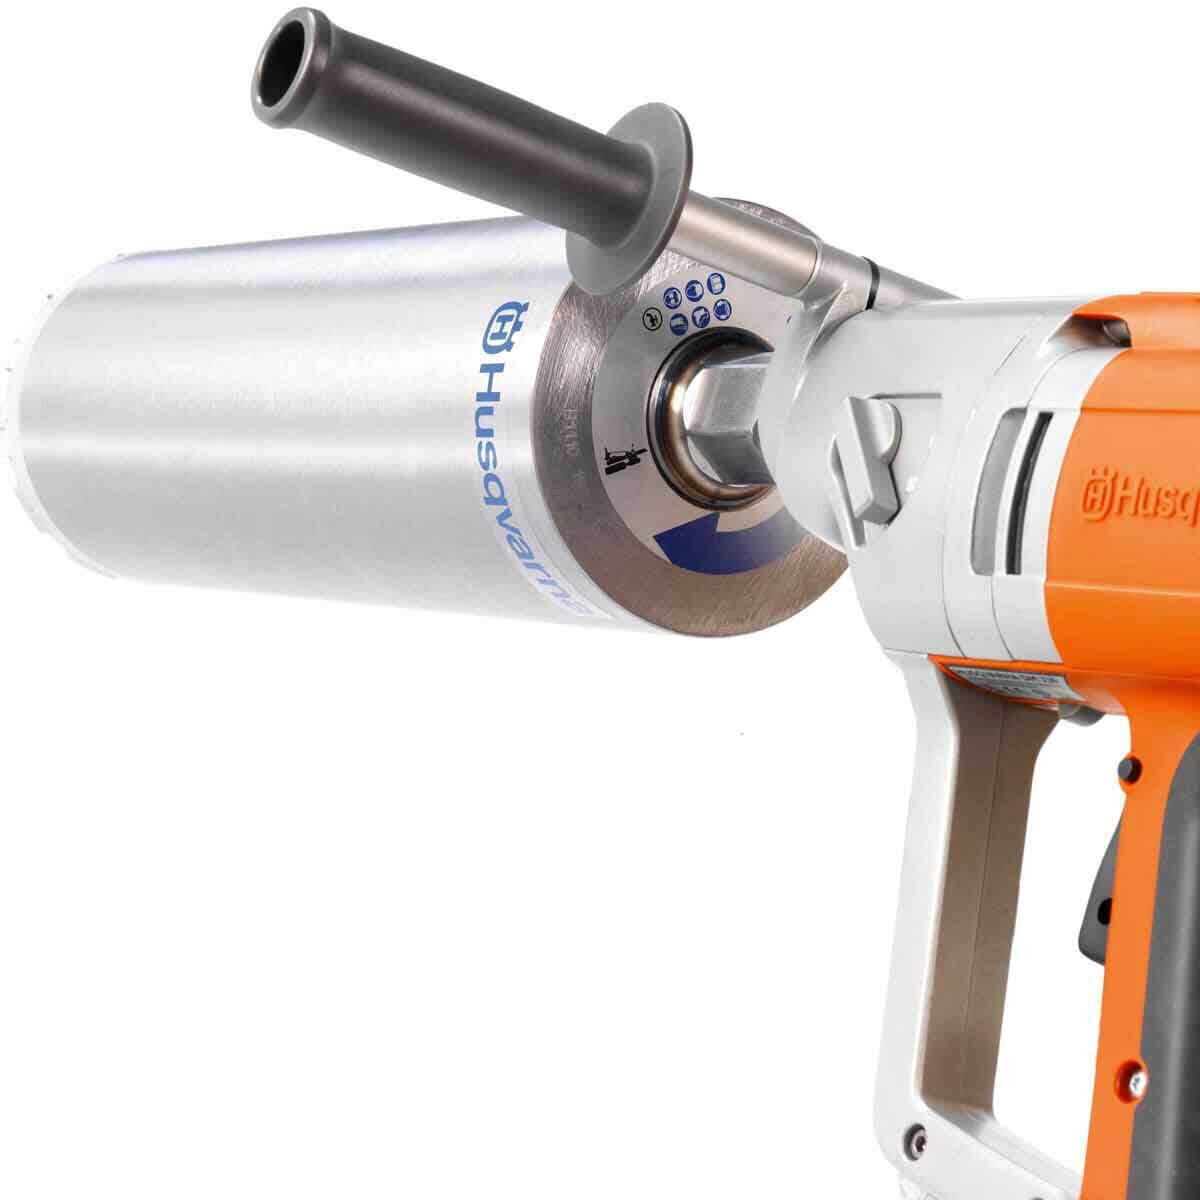 Husqvarna DM230 Core Drill with Diamond Core Bit